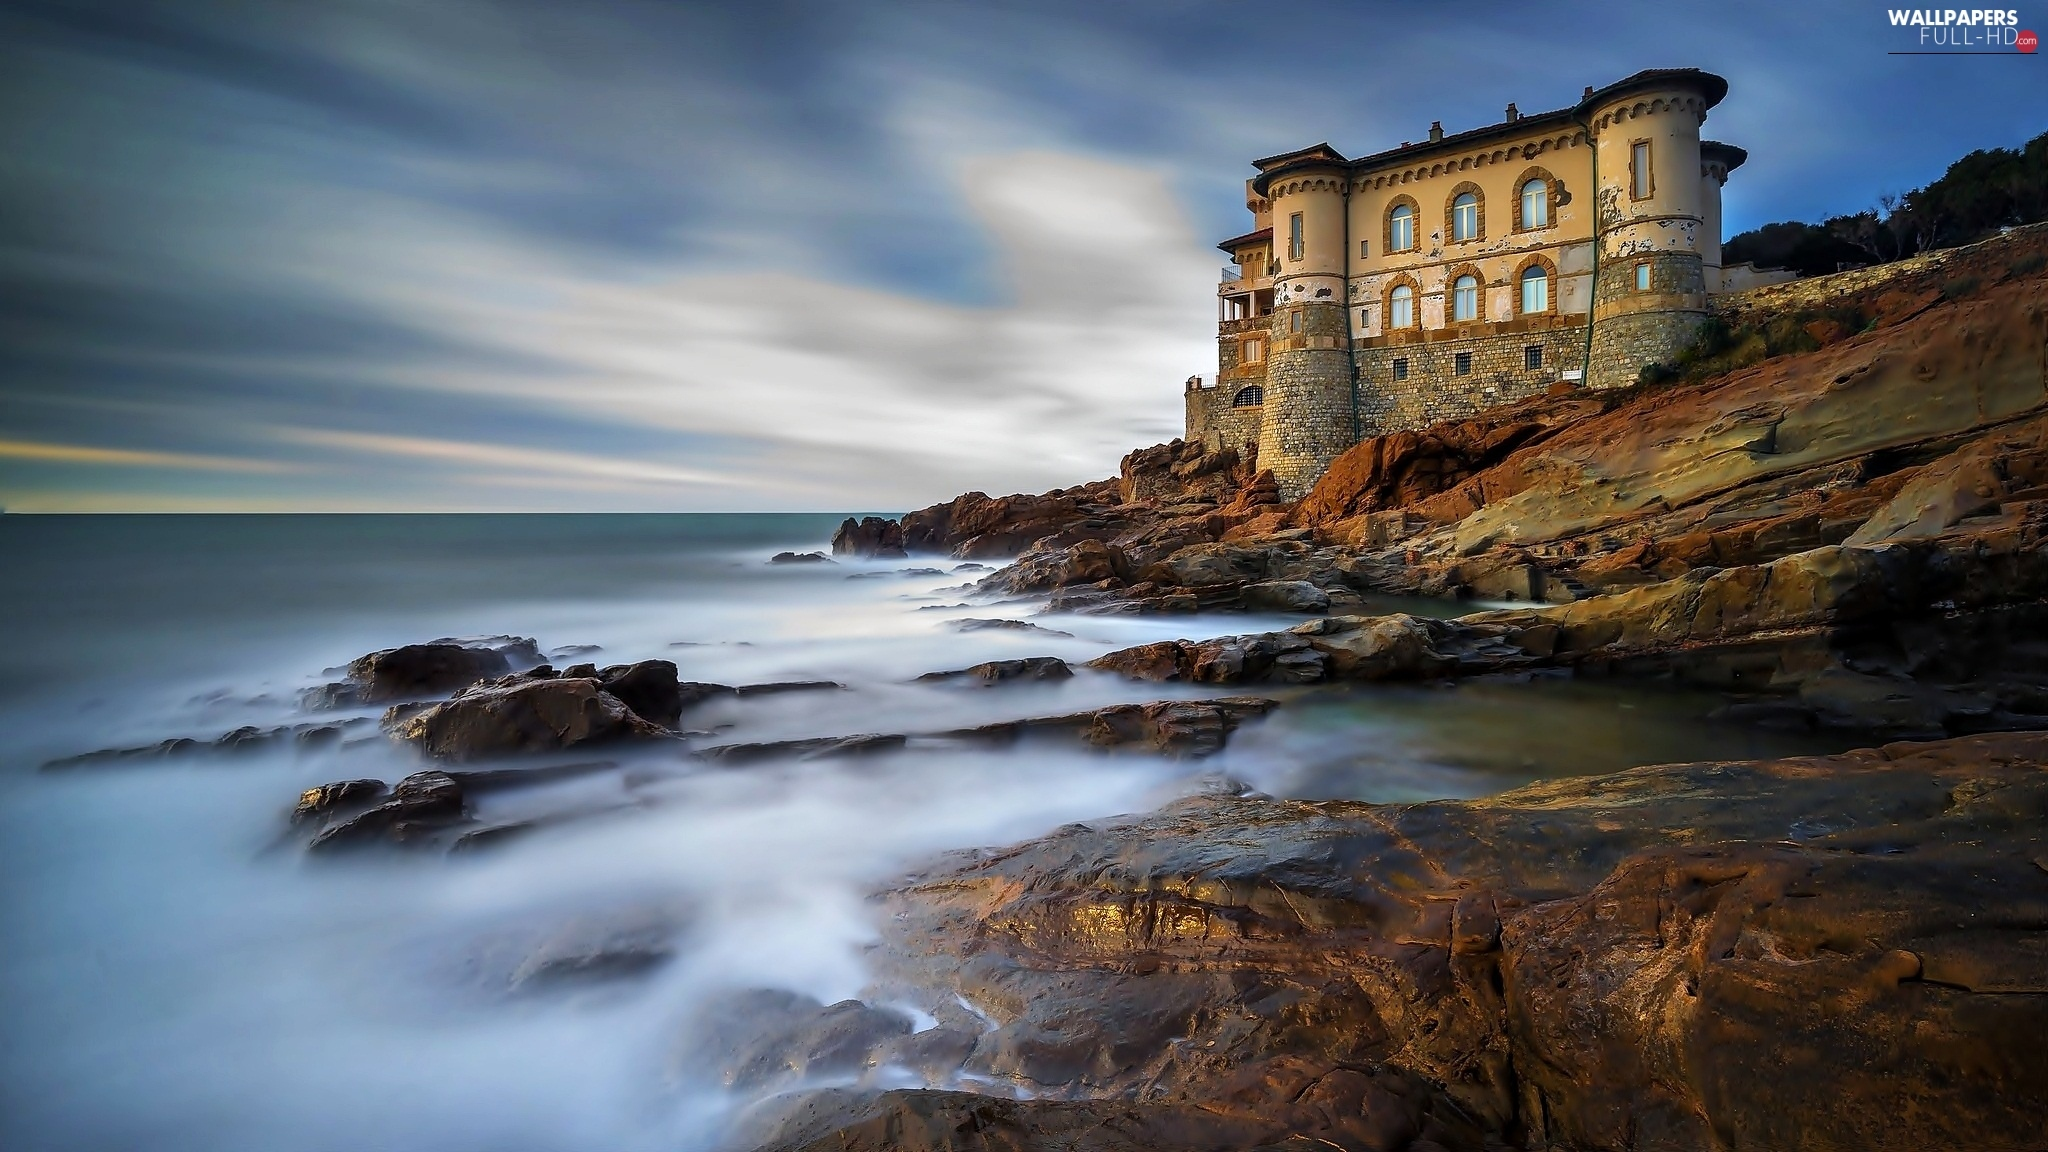 Castle, rocks, sea, Sky